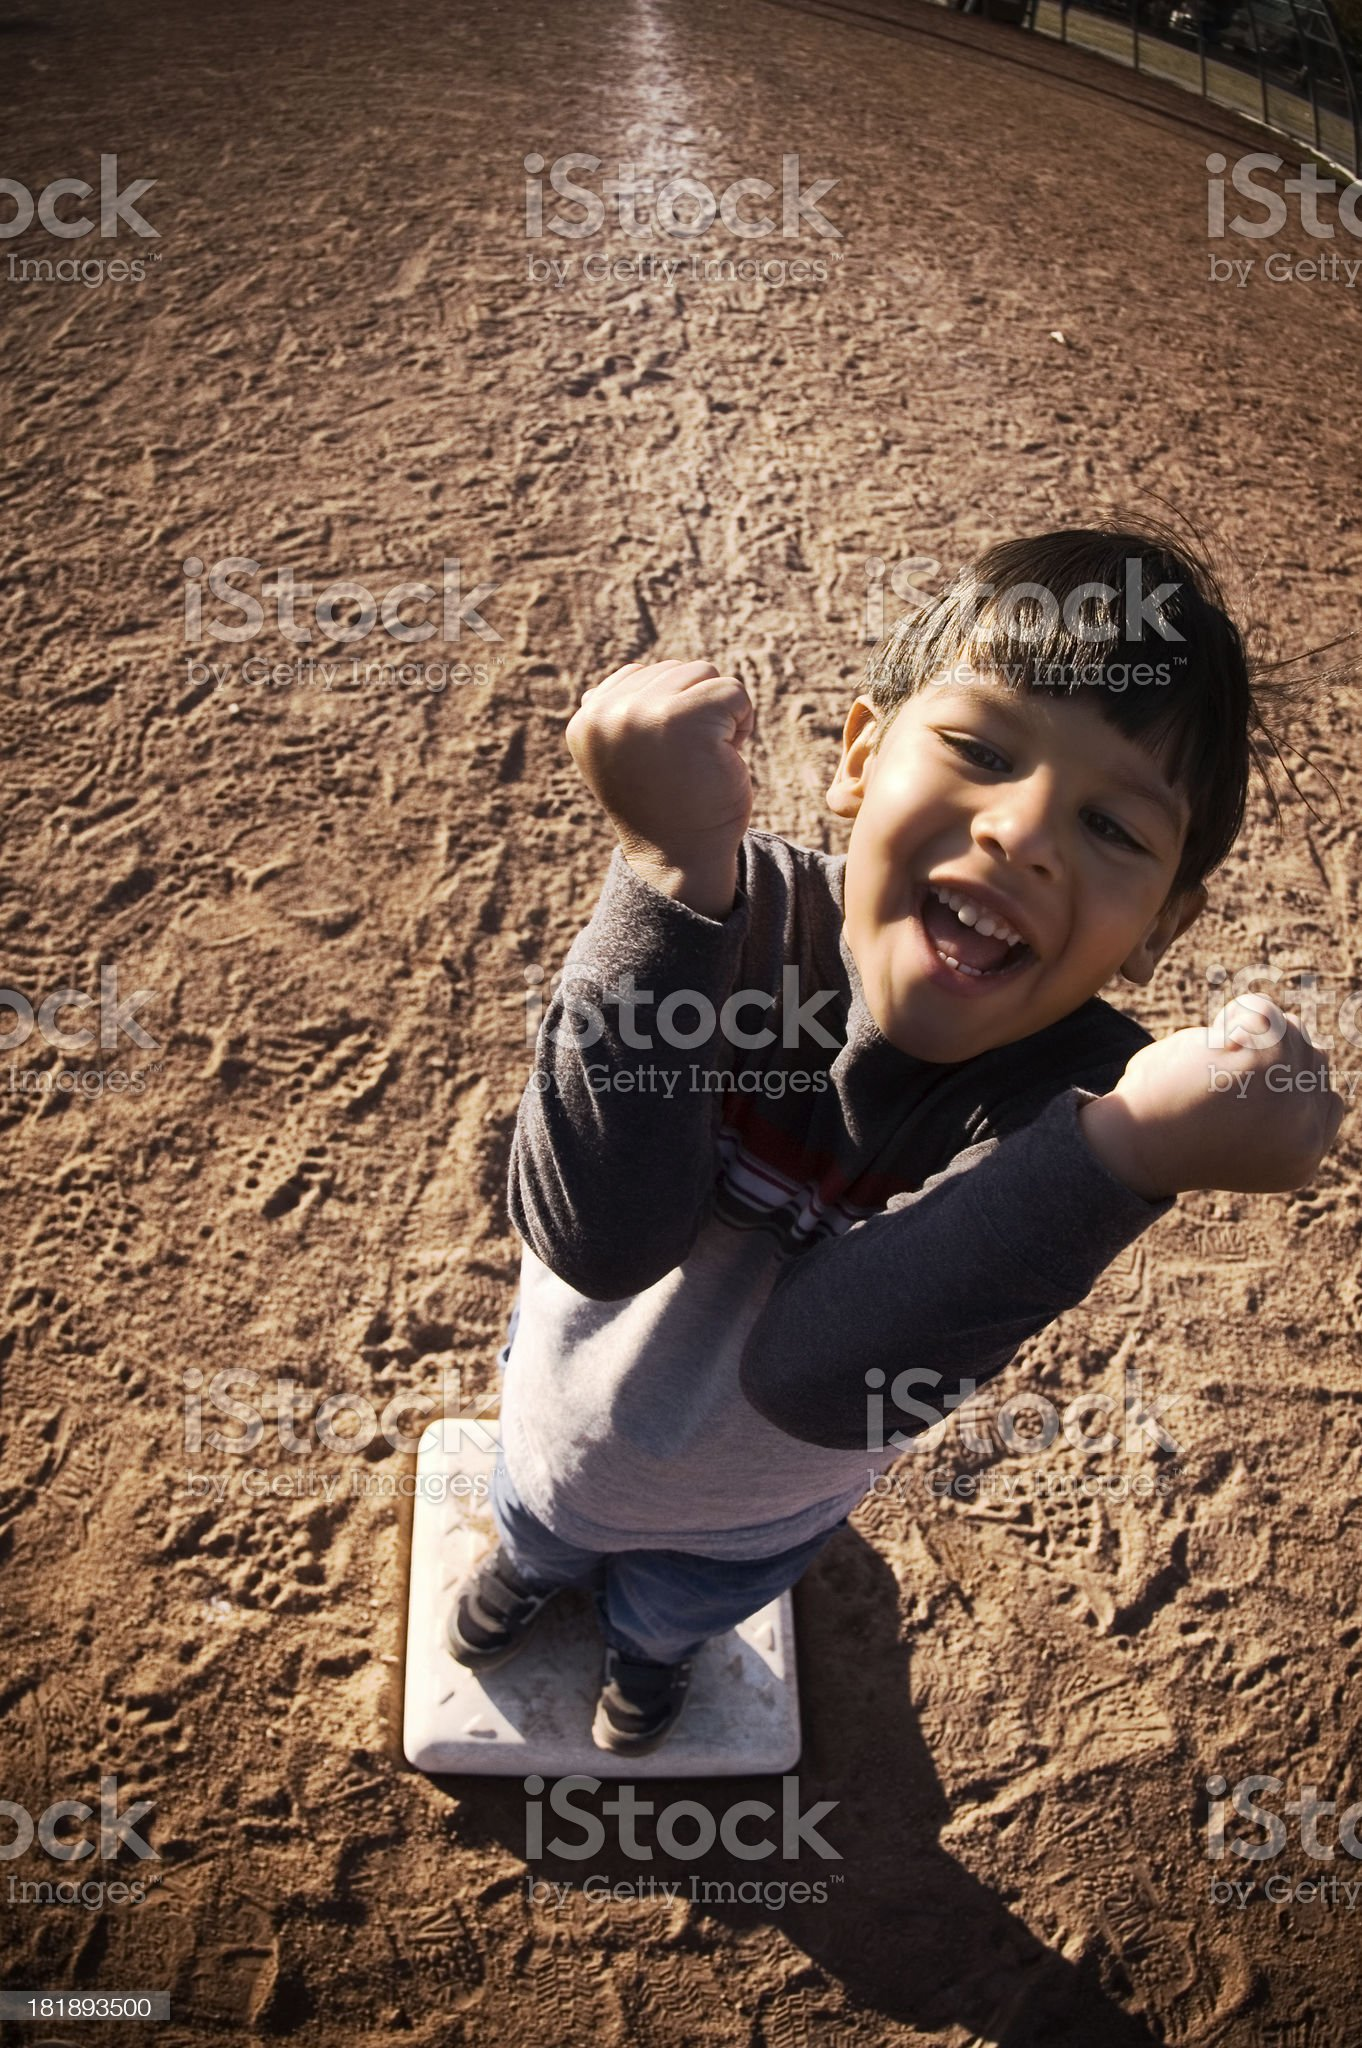 love the game royalty-free stock photo